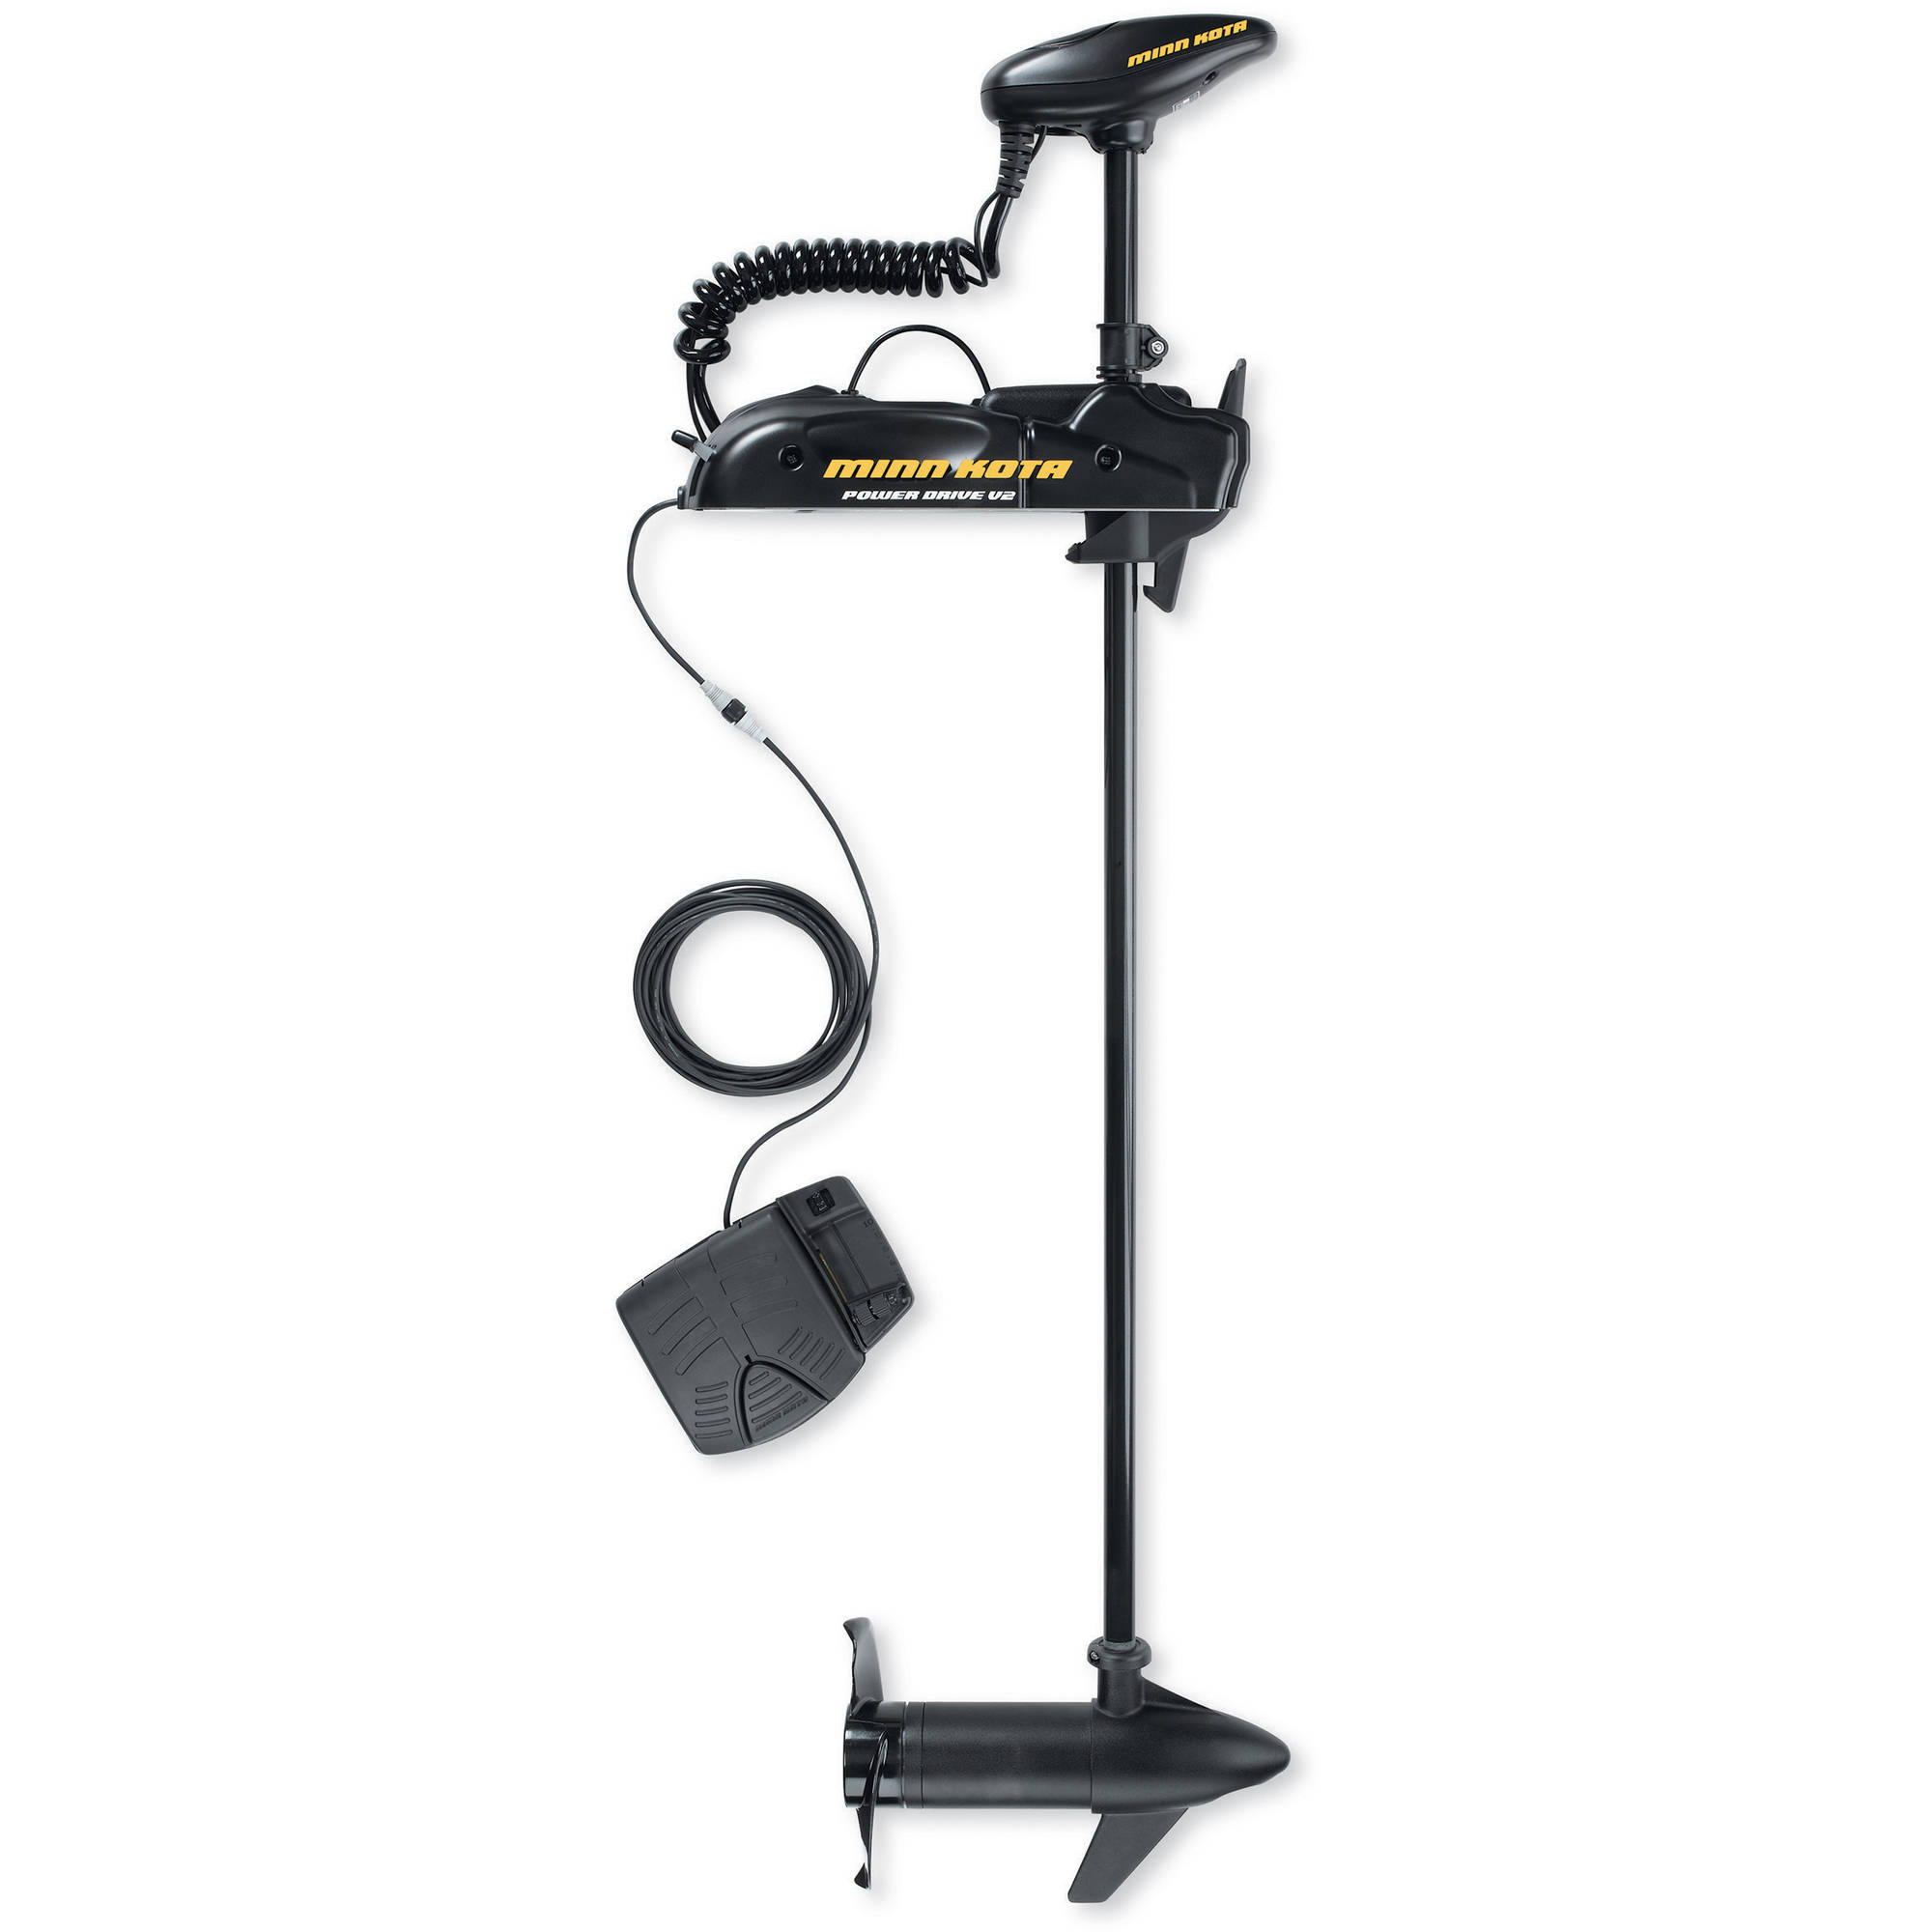 "Click here to buy Minn Kota Powerdrive V2 55 AP Freshwater Bow Mount Trolling Motor with AutoPilot, 55 lb Thrust, 54"" Shaft by MINN KOTA."